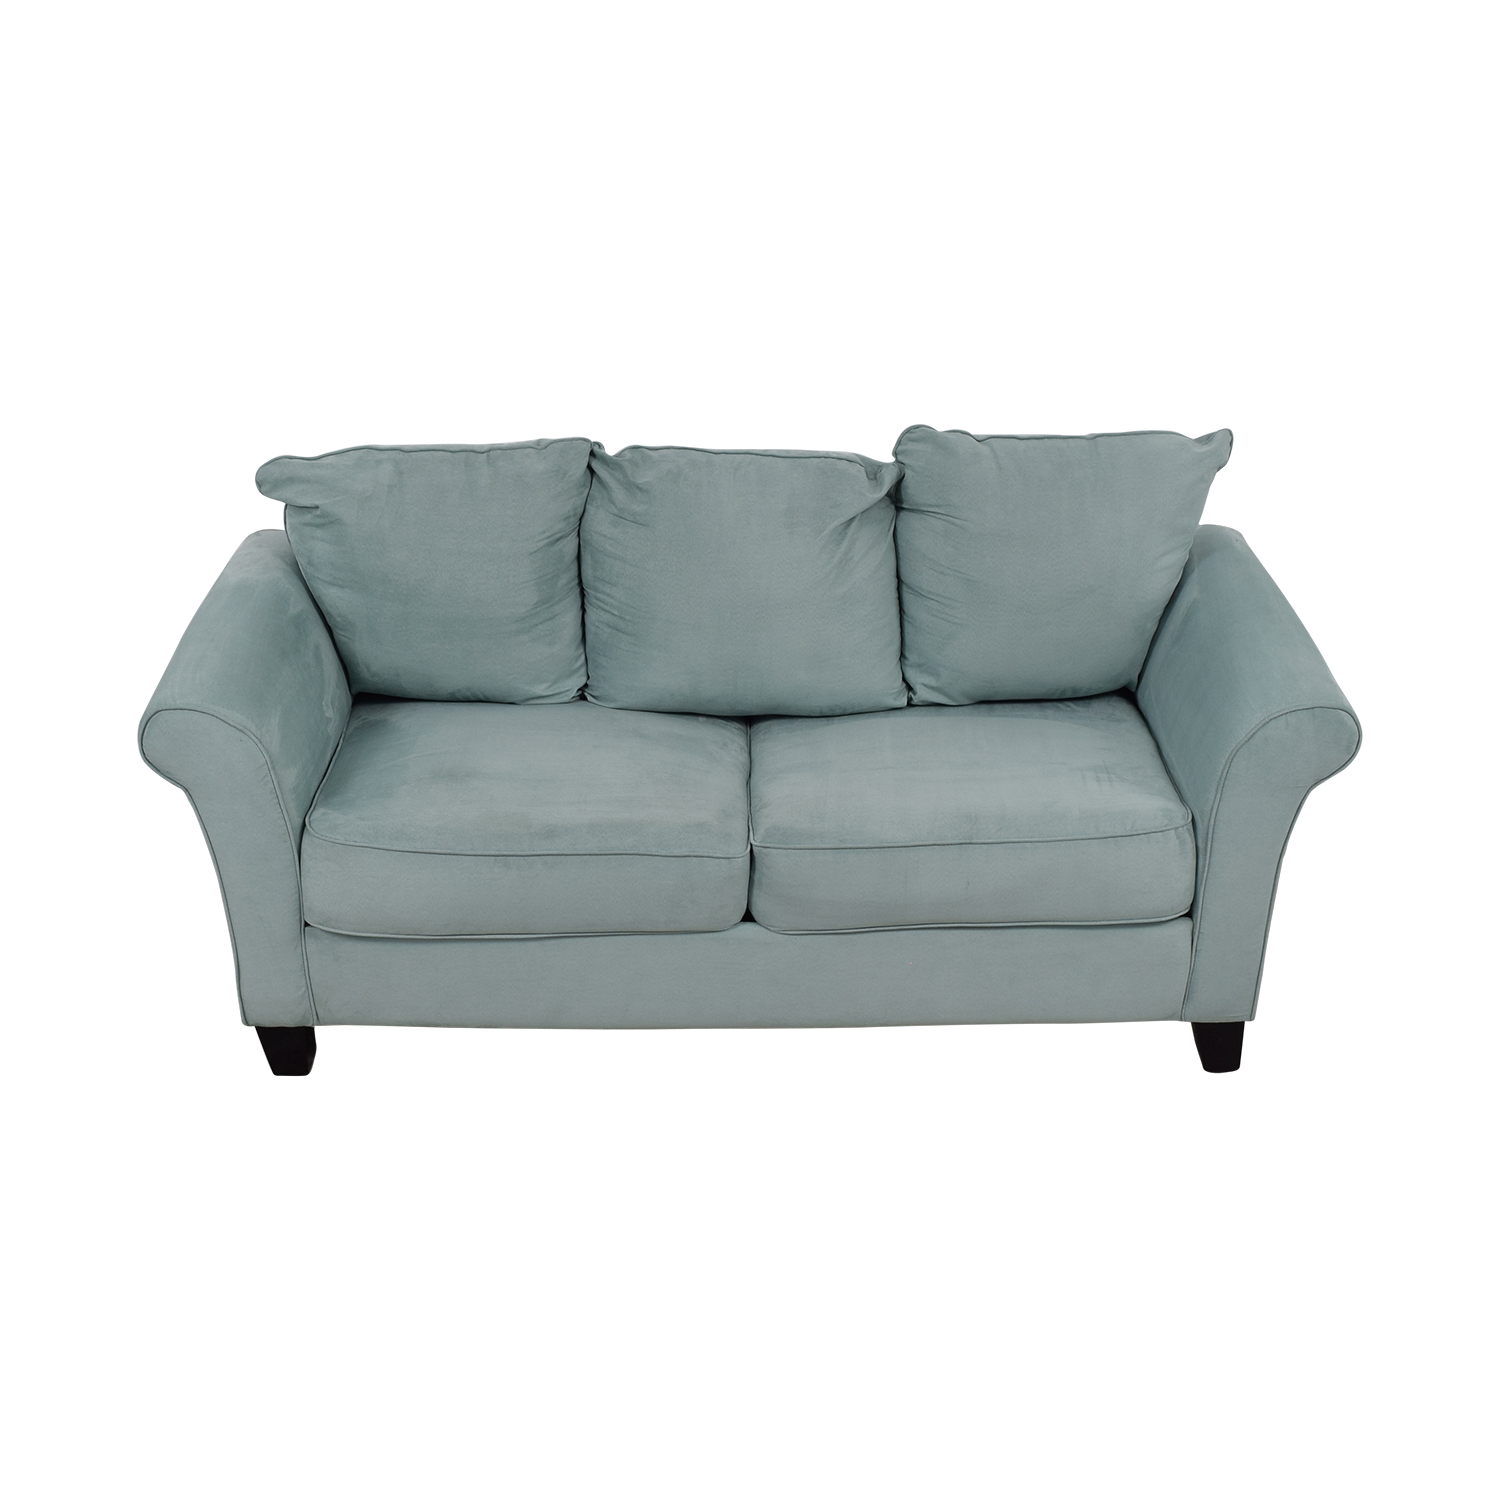 Beachcrest Home Beachcrest Home Paget Blue Two-Cushion Sofa nj